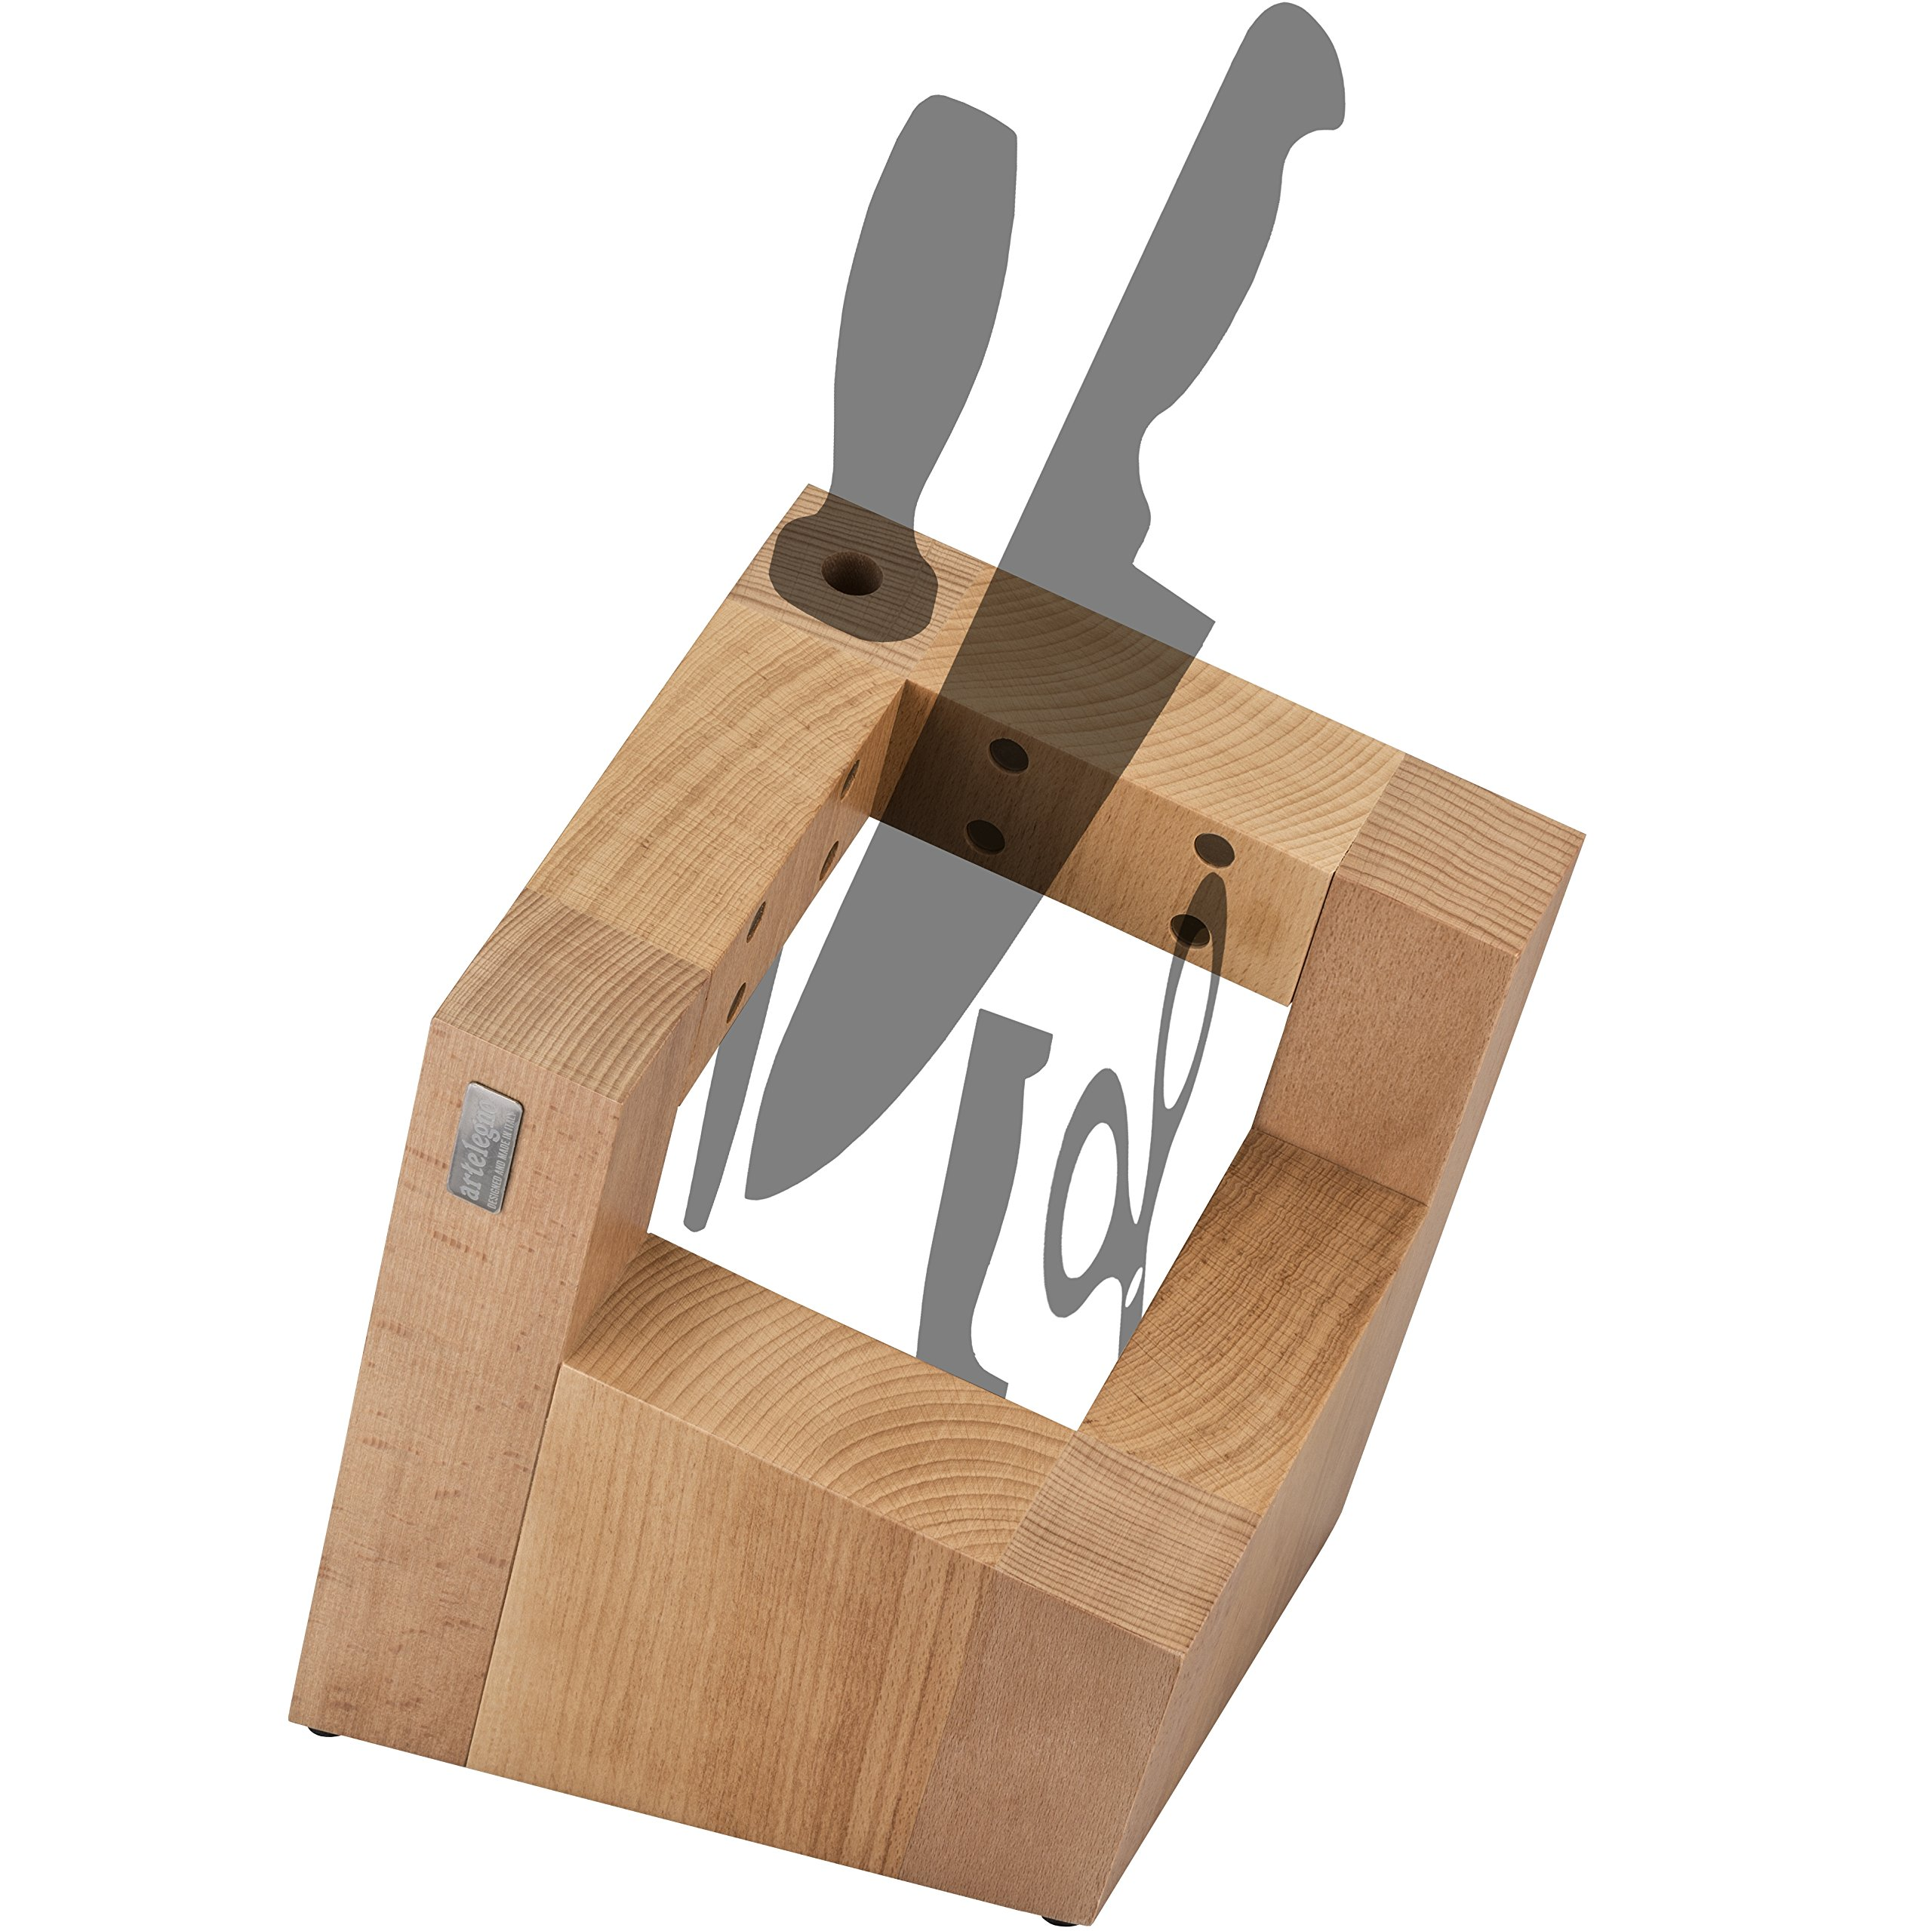 Artelegno Magnetic Knife Block Solid Beech Wood with Sharpener Holder, Luxurious Italian Pisa Collection by Master Craftsmen Displays/Protects 8 High-End Knives, Eco-friendly--Natural Finish